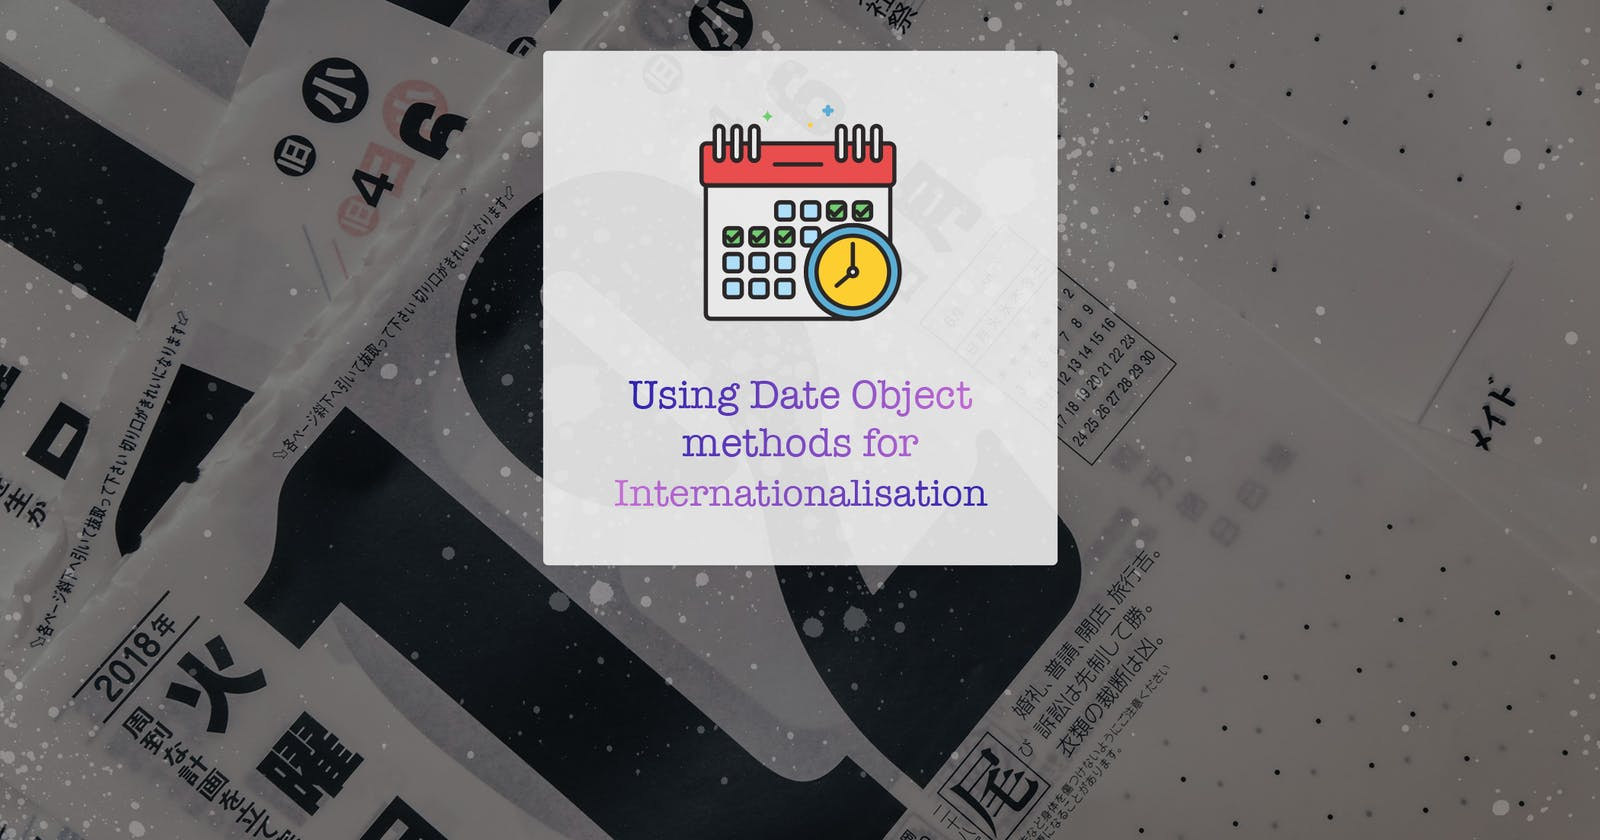 You don't need Libraries for internationalisation (i18n) of Dates